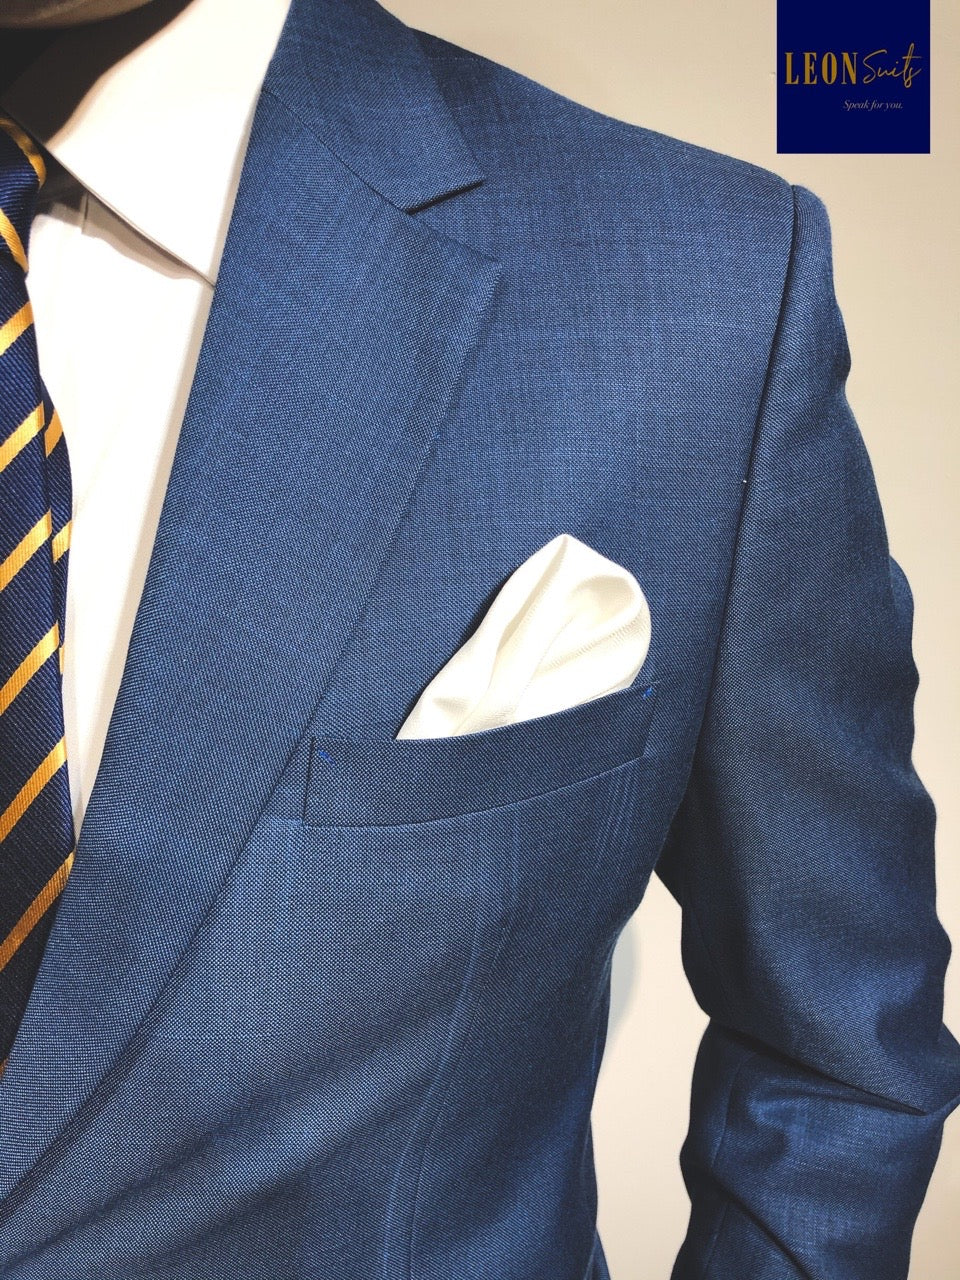 Leon Suits Client Testimonials Feedback